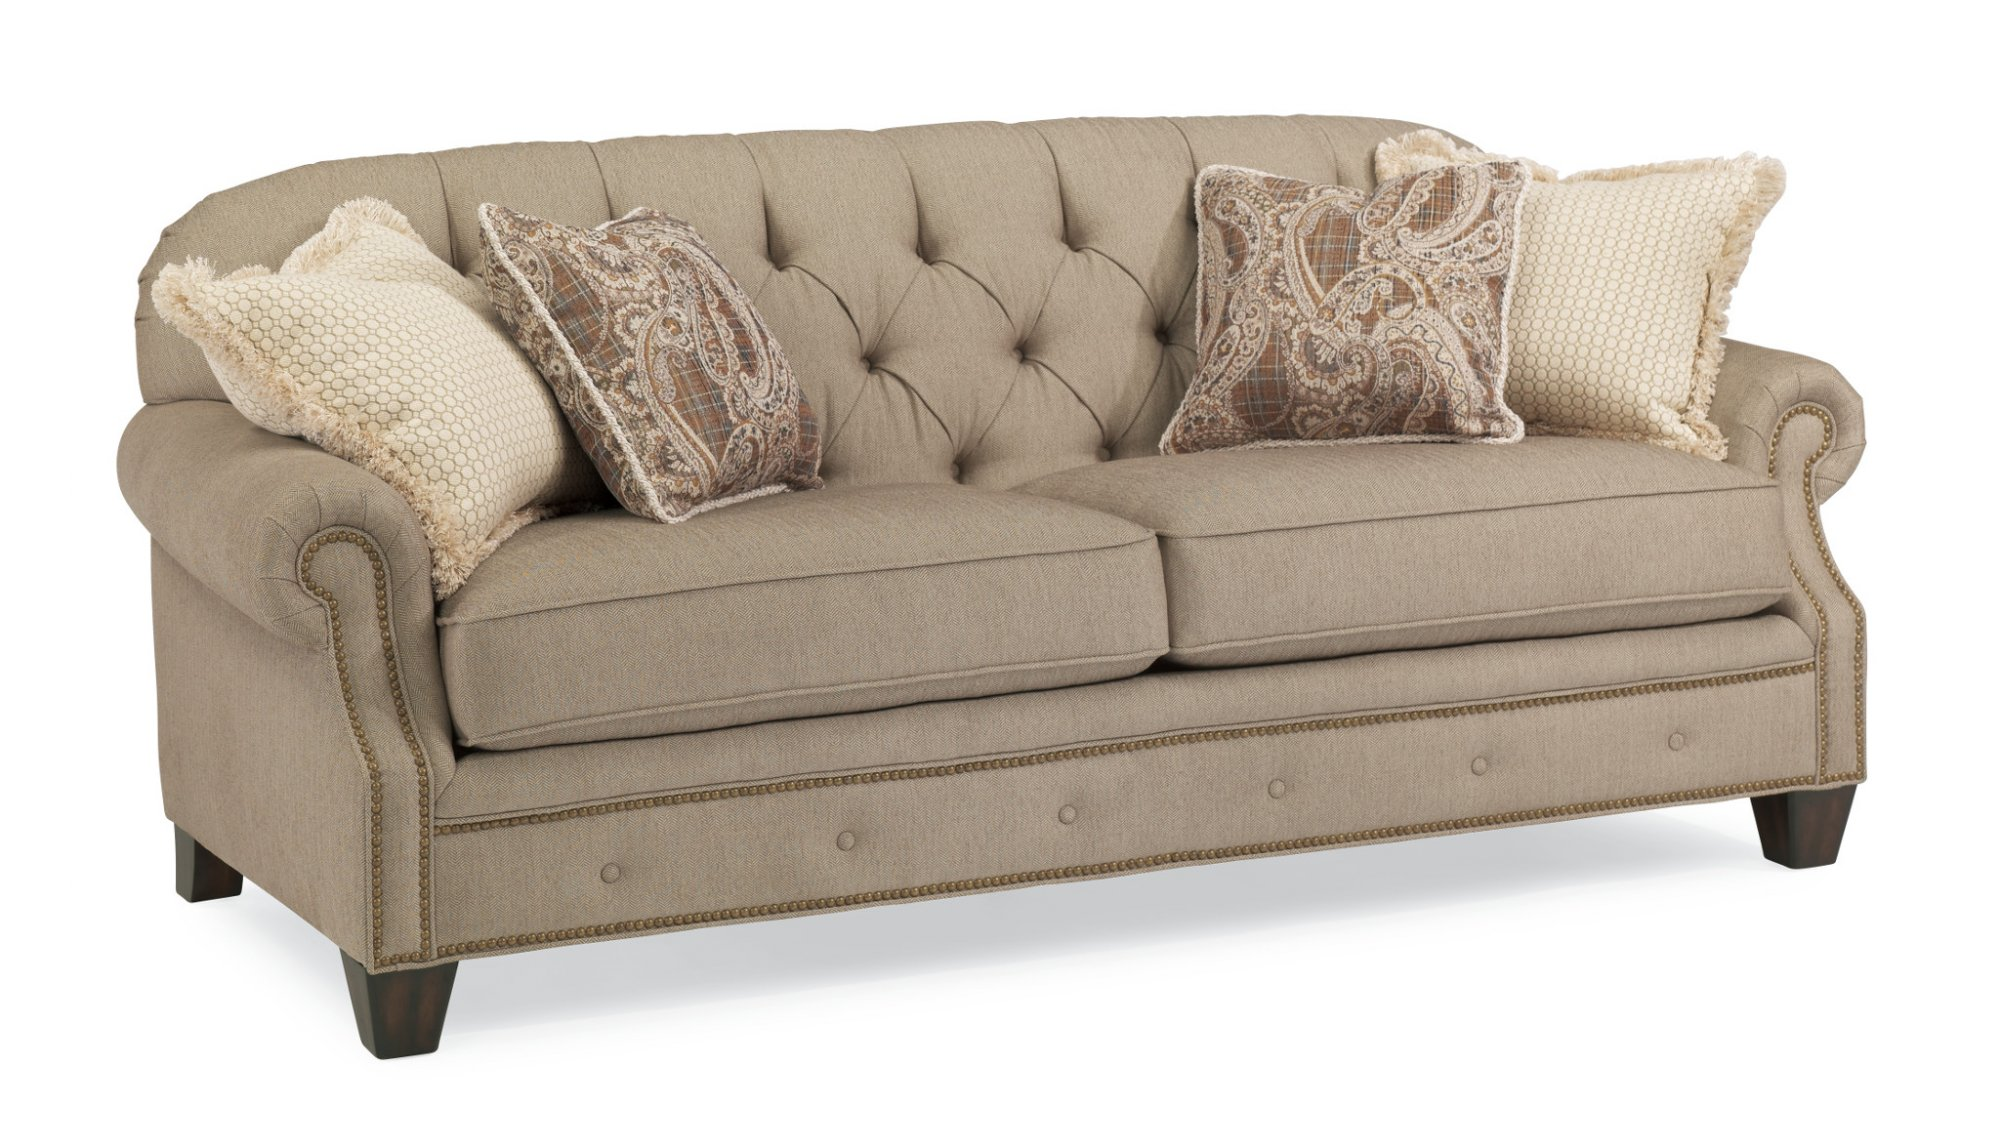 flexsteel sofas share via email download a high-resolution image YJNQUOZ